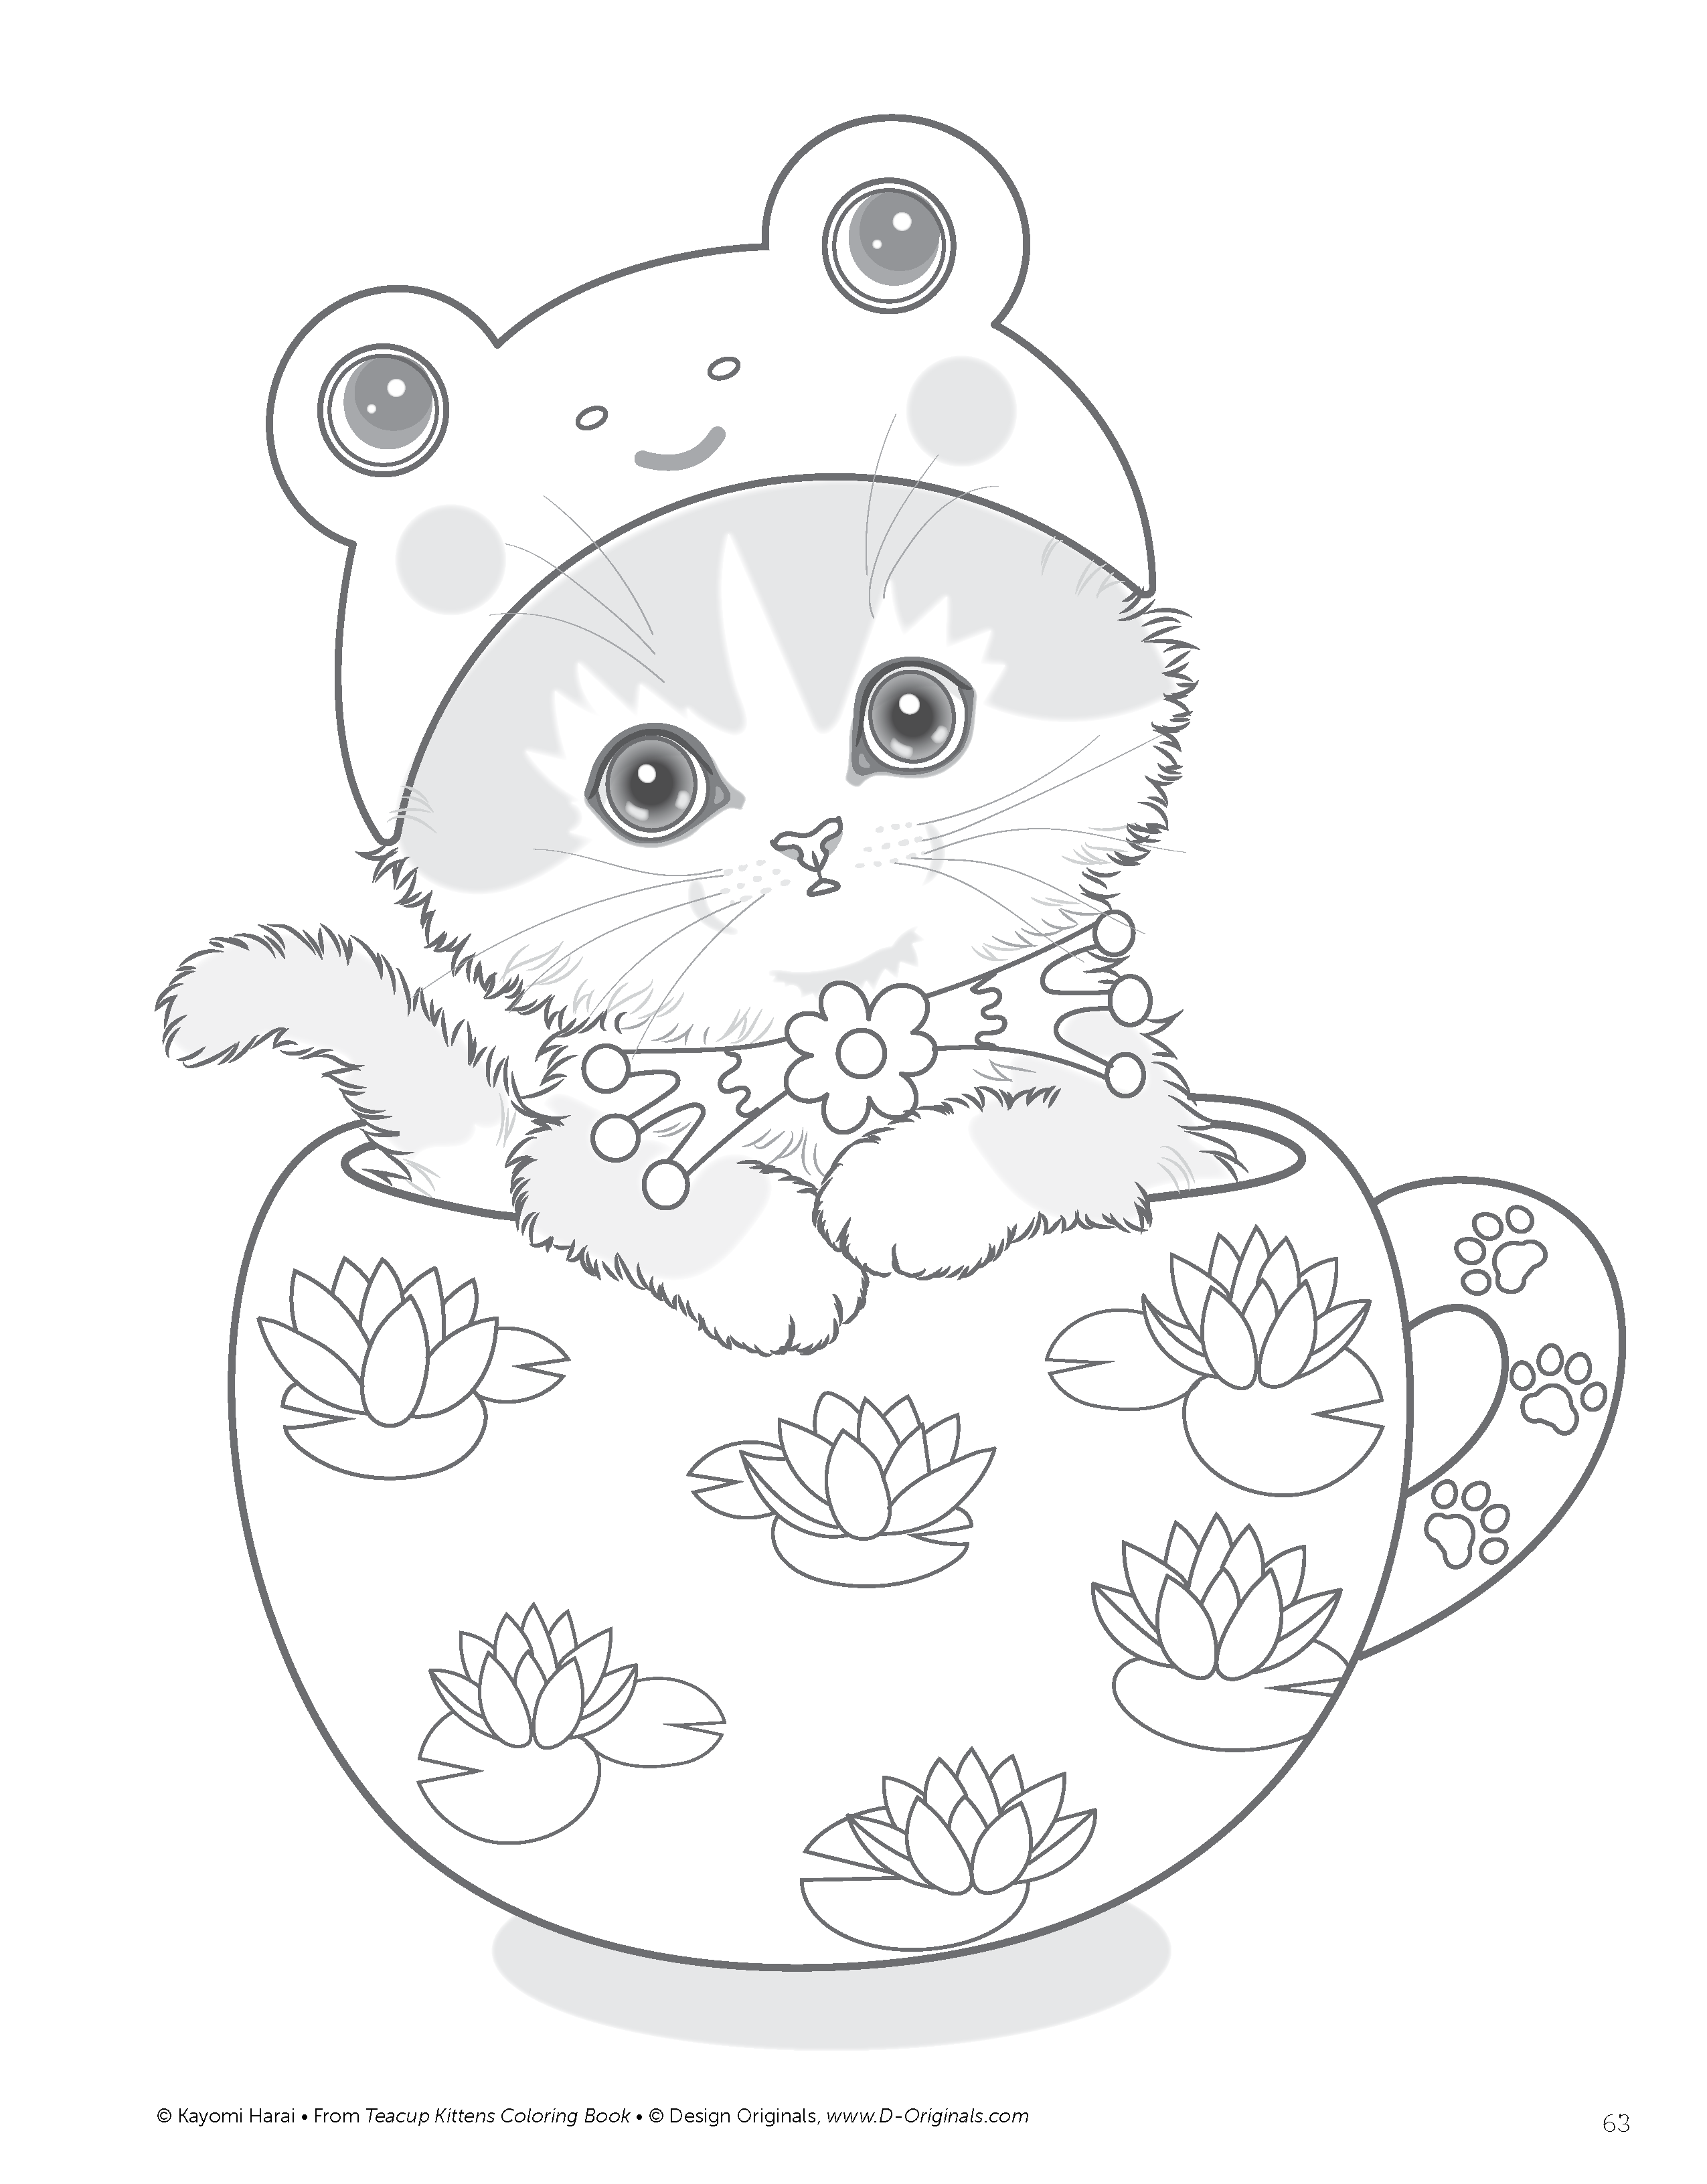 pictures of kittens to color kittens coloring pages minister coloring pictures kittens of color to